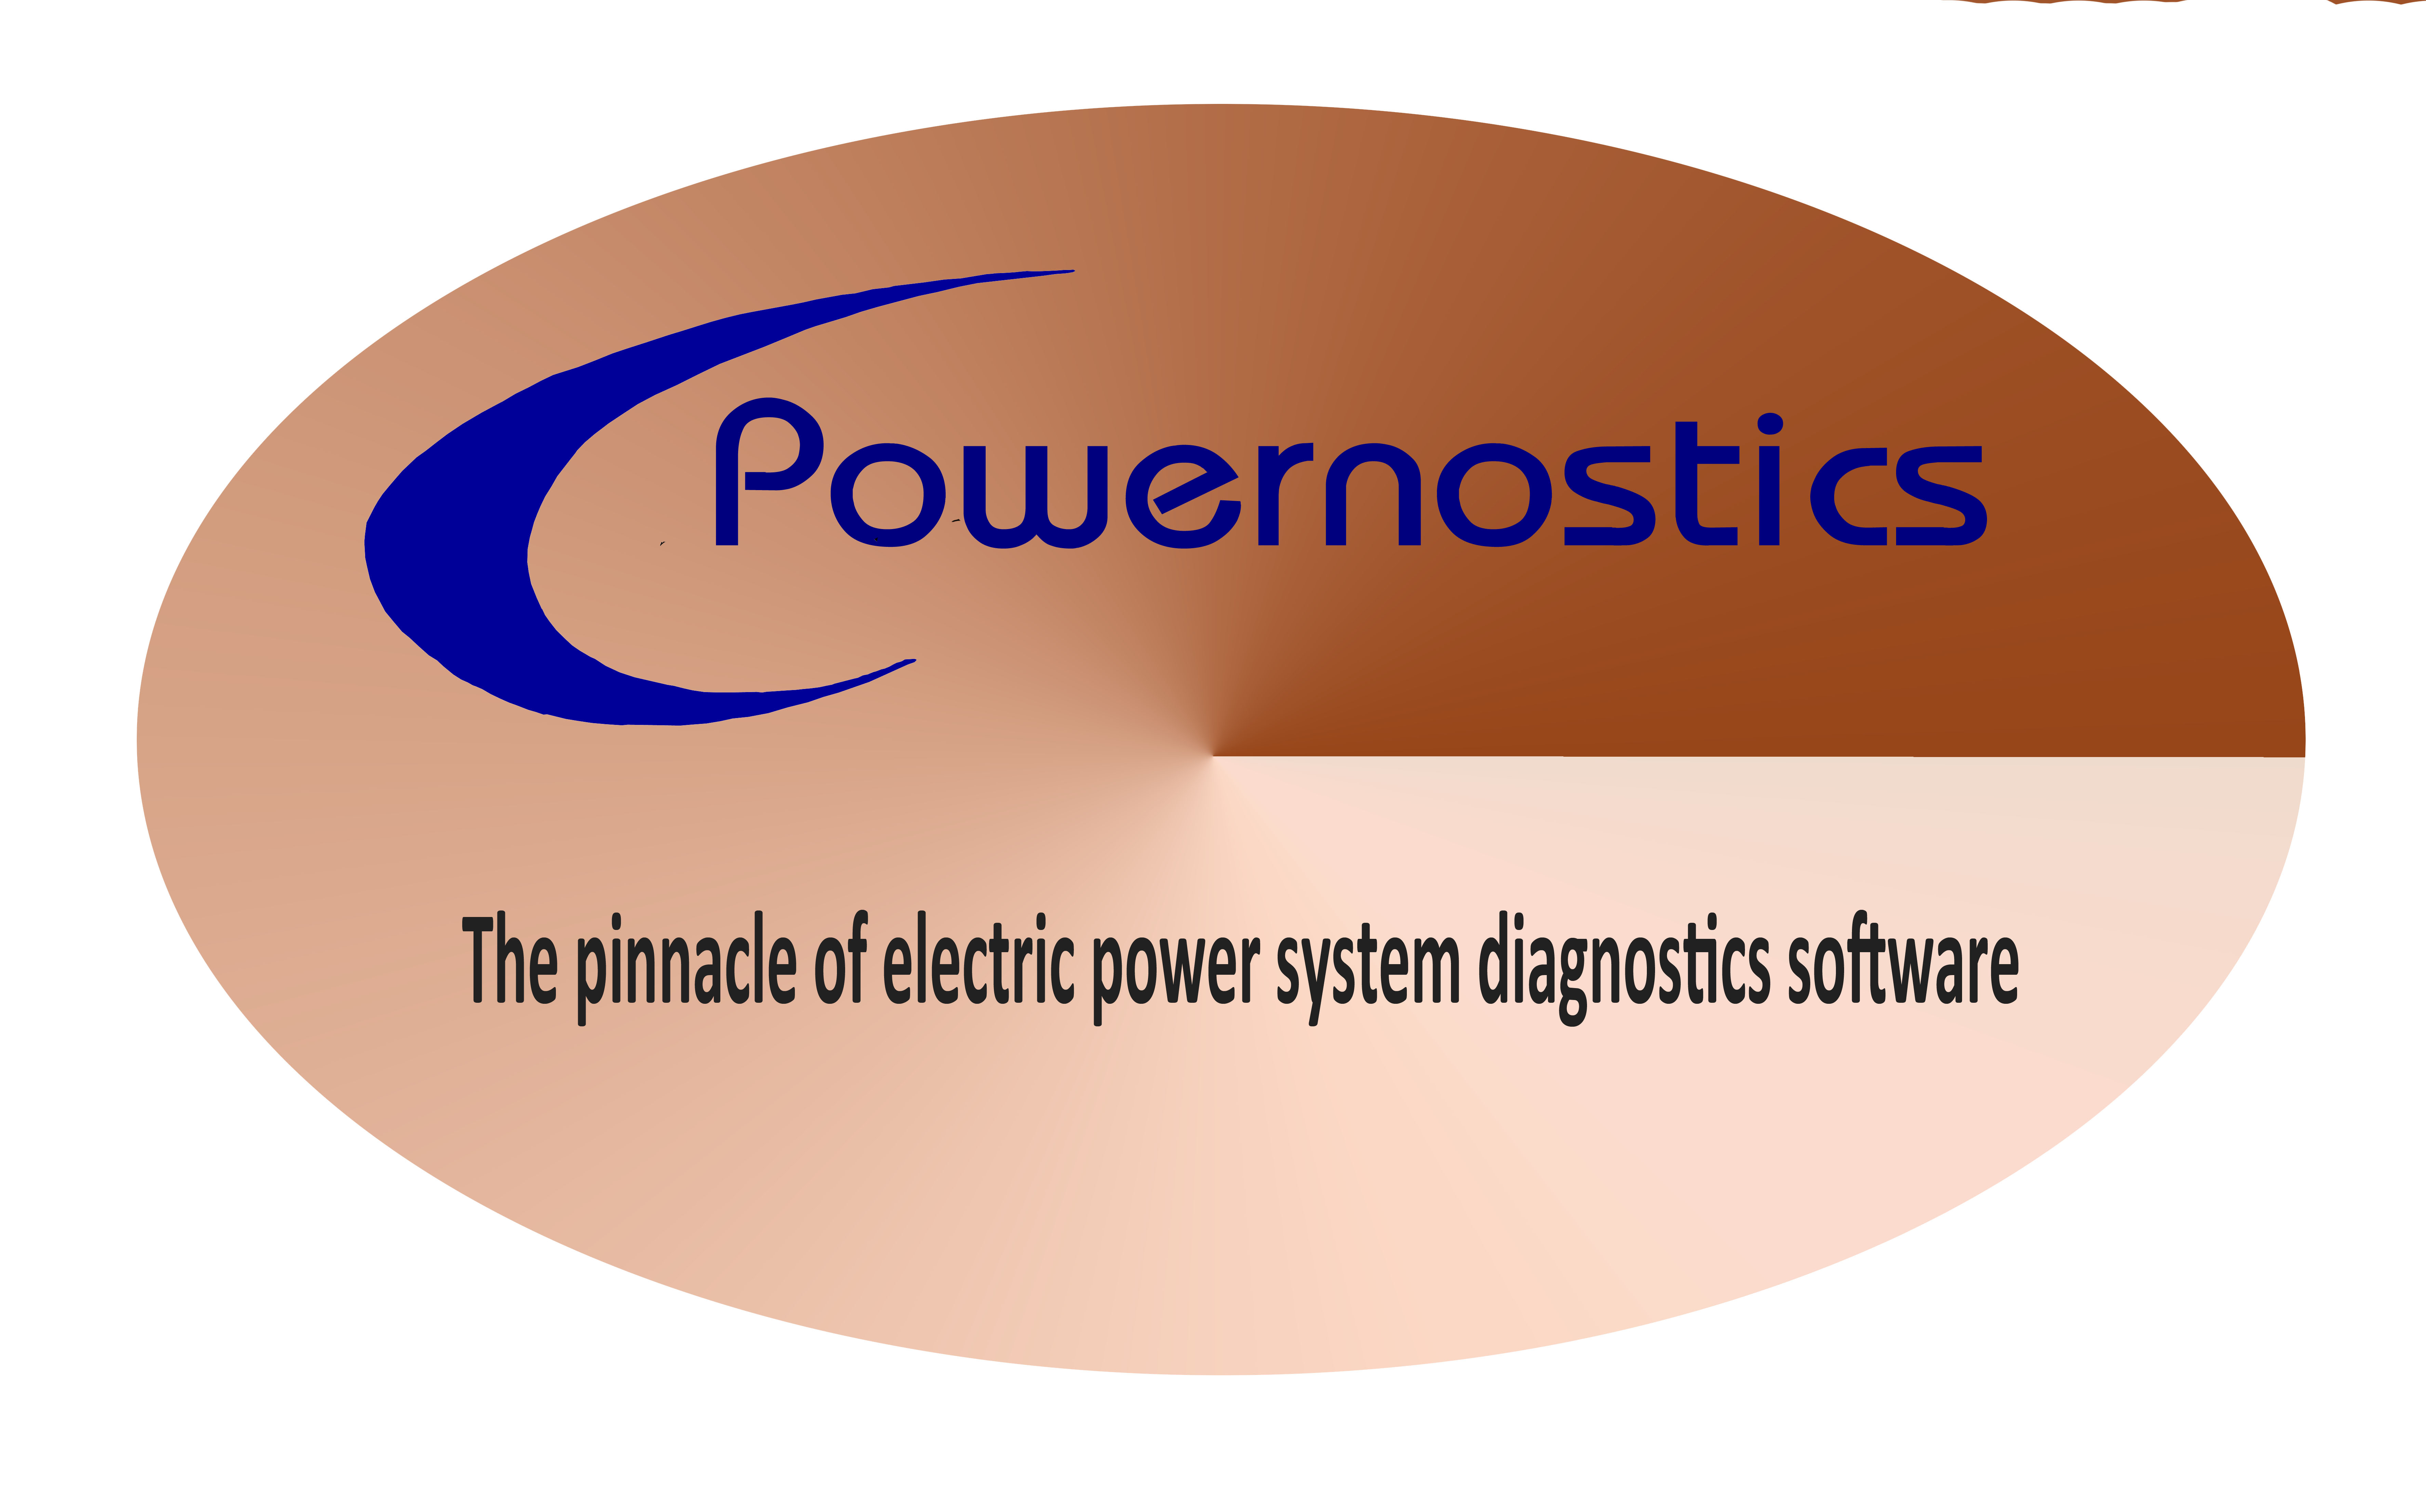 Power Systems Diagnostics generation